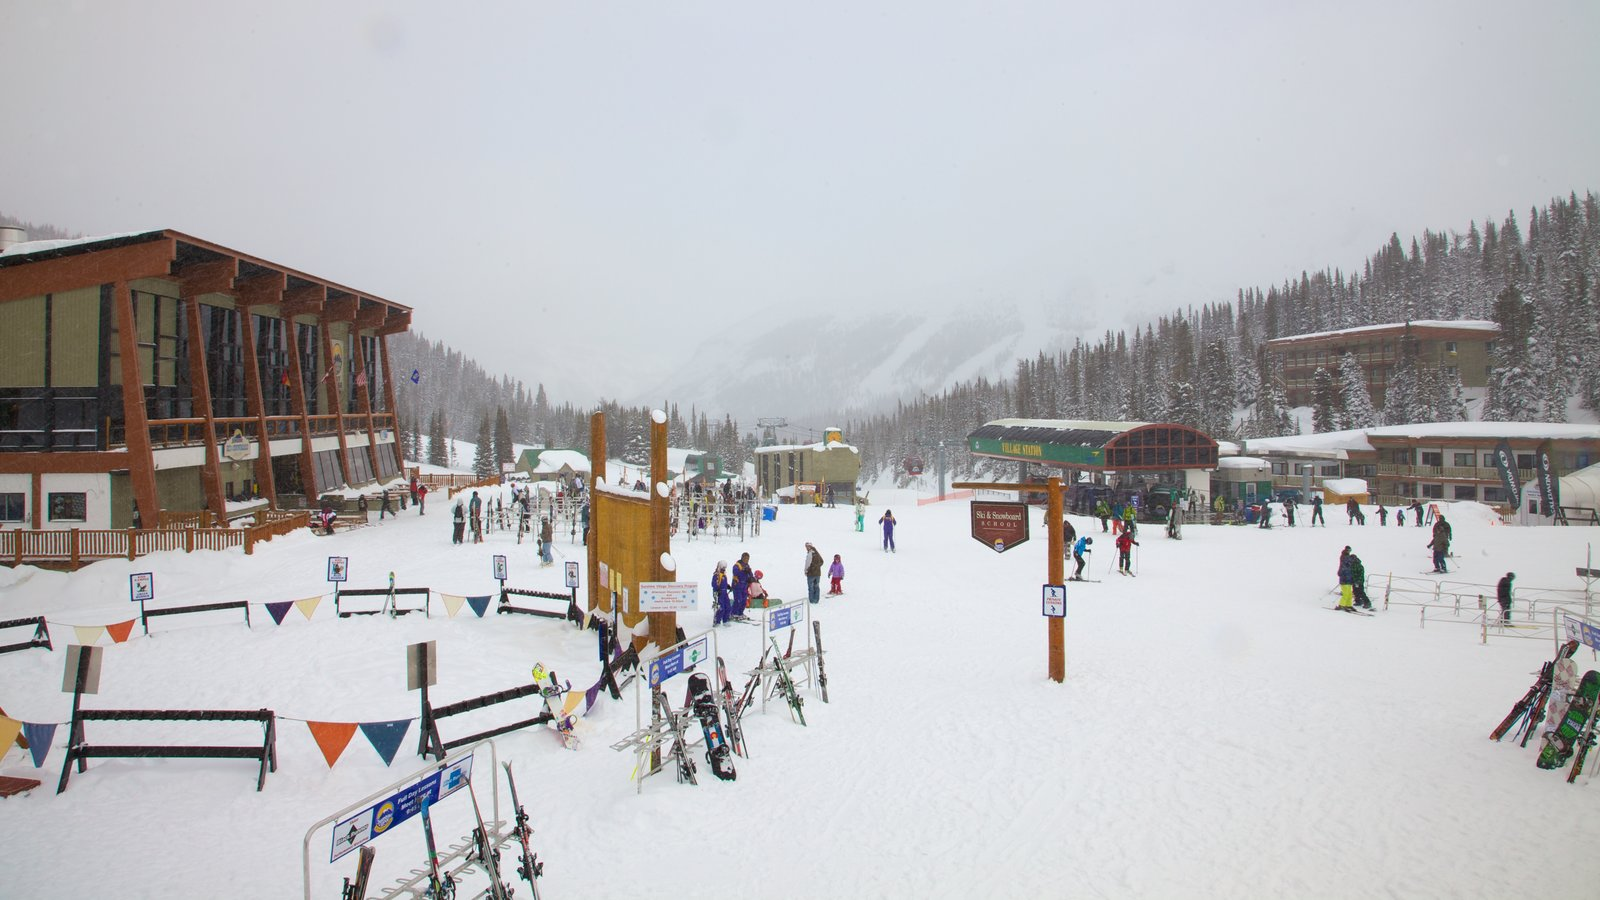 Sunshine Village which includes mountains, a small town or village and a sporting event